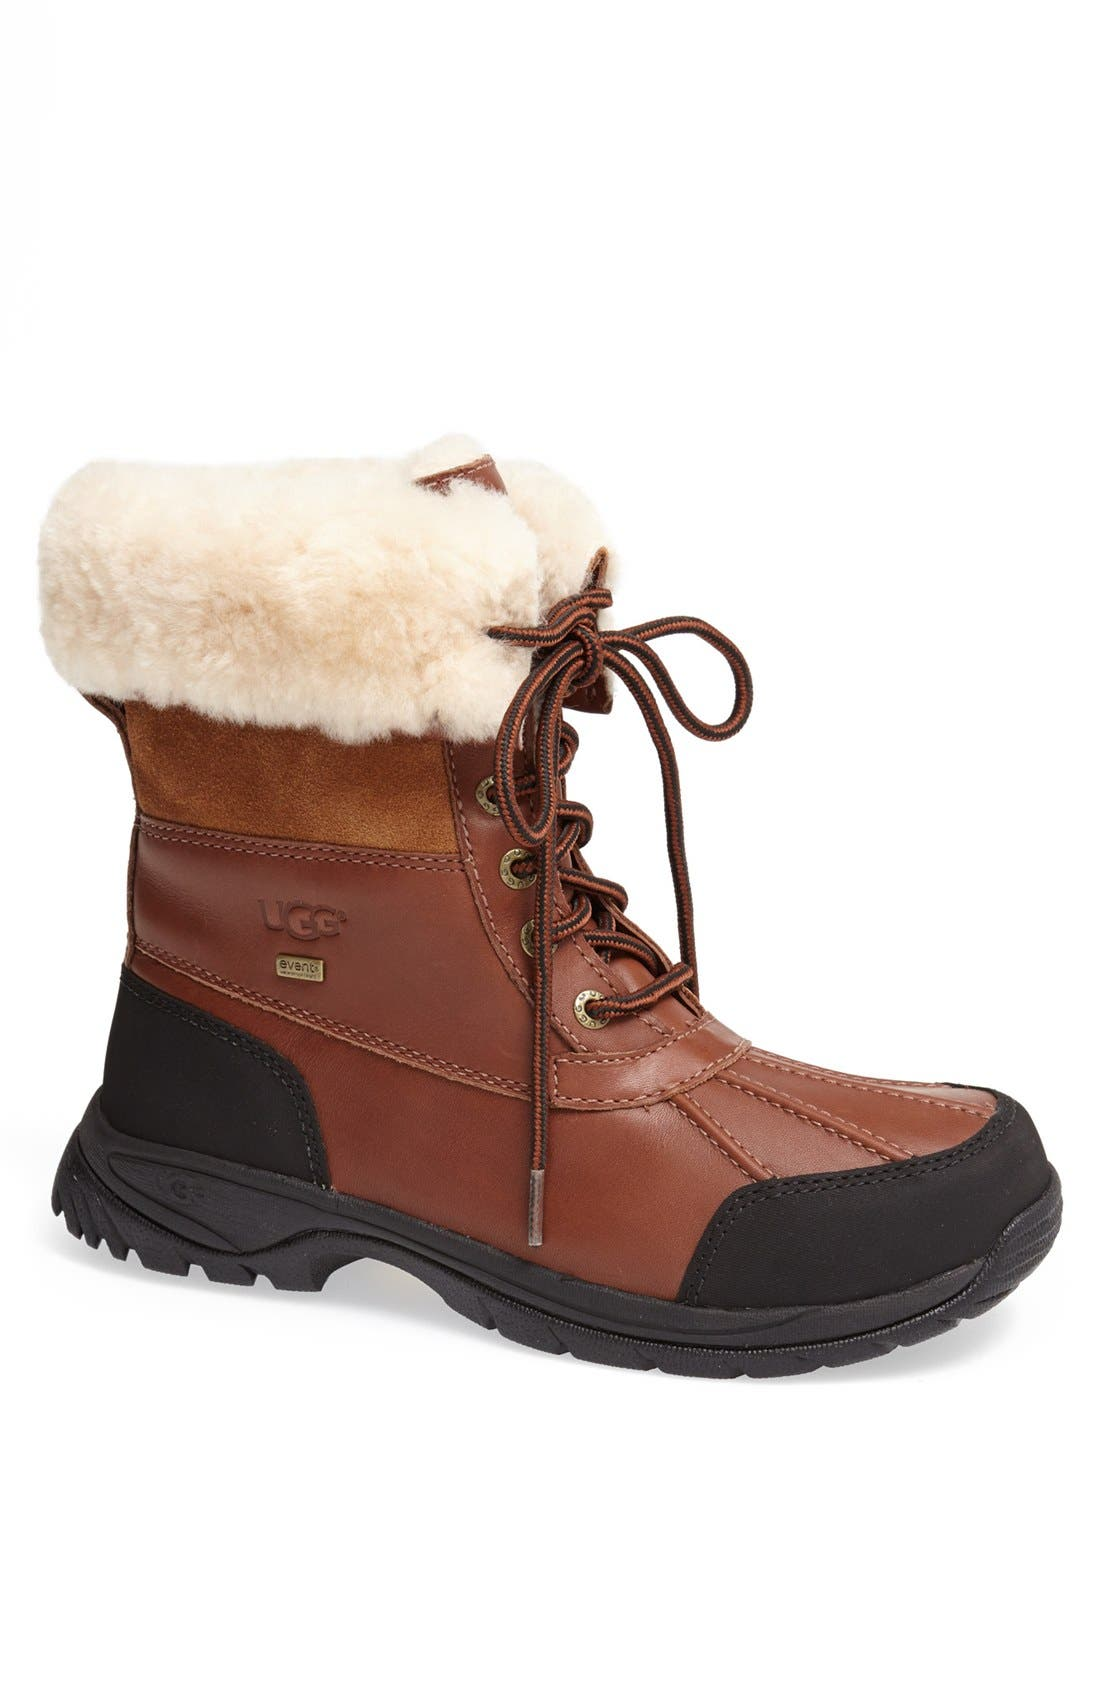 Alternate Image 1 Selected - UGG® Butte Boot (Men)